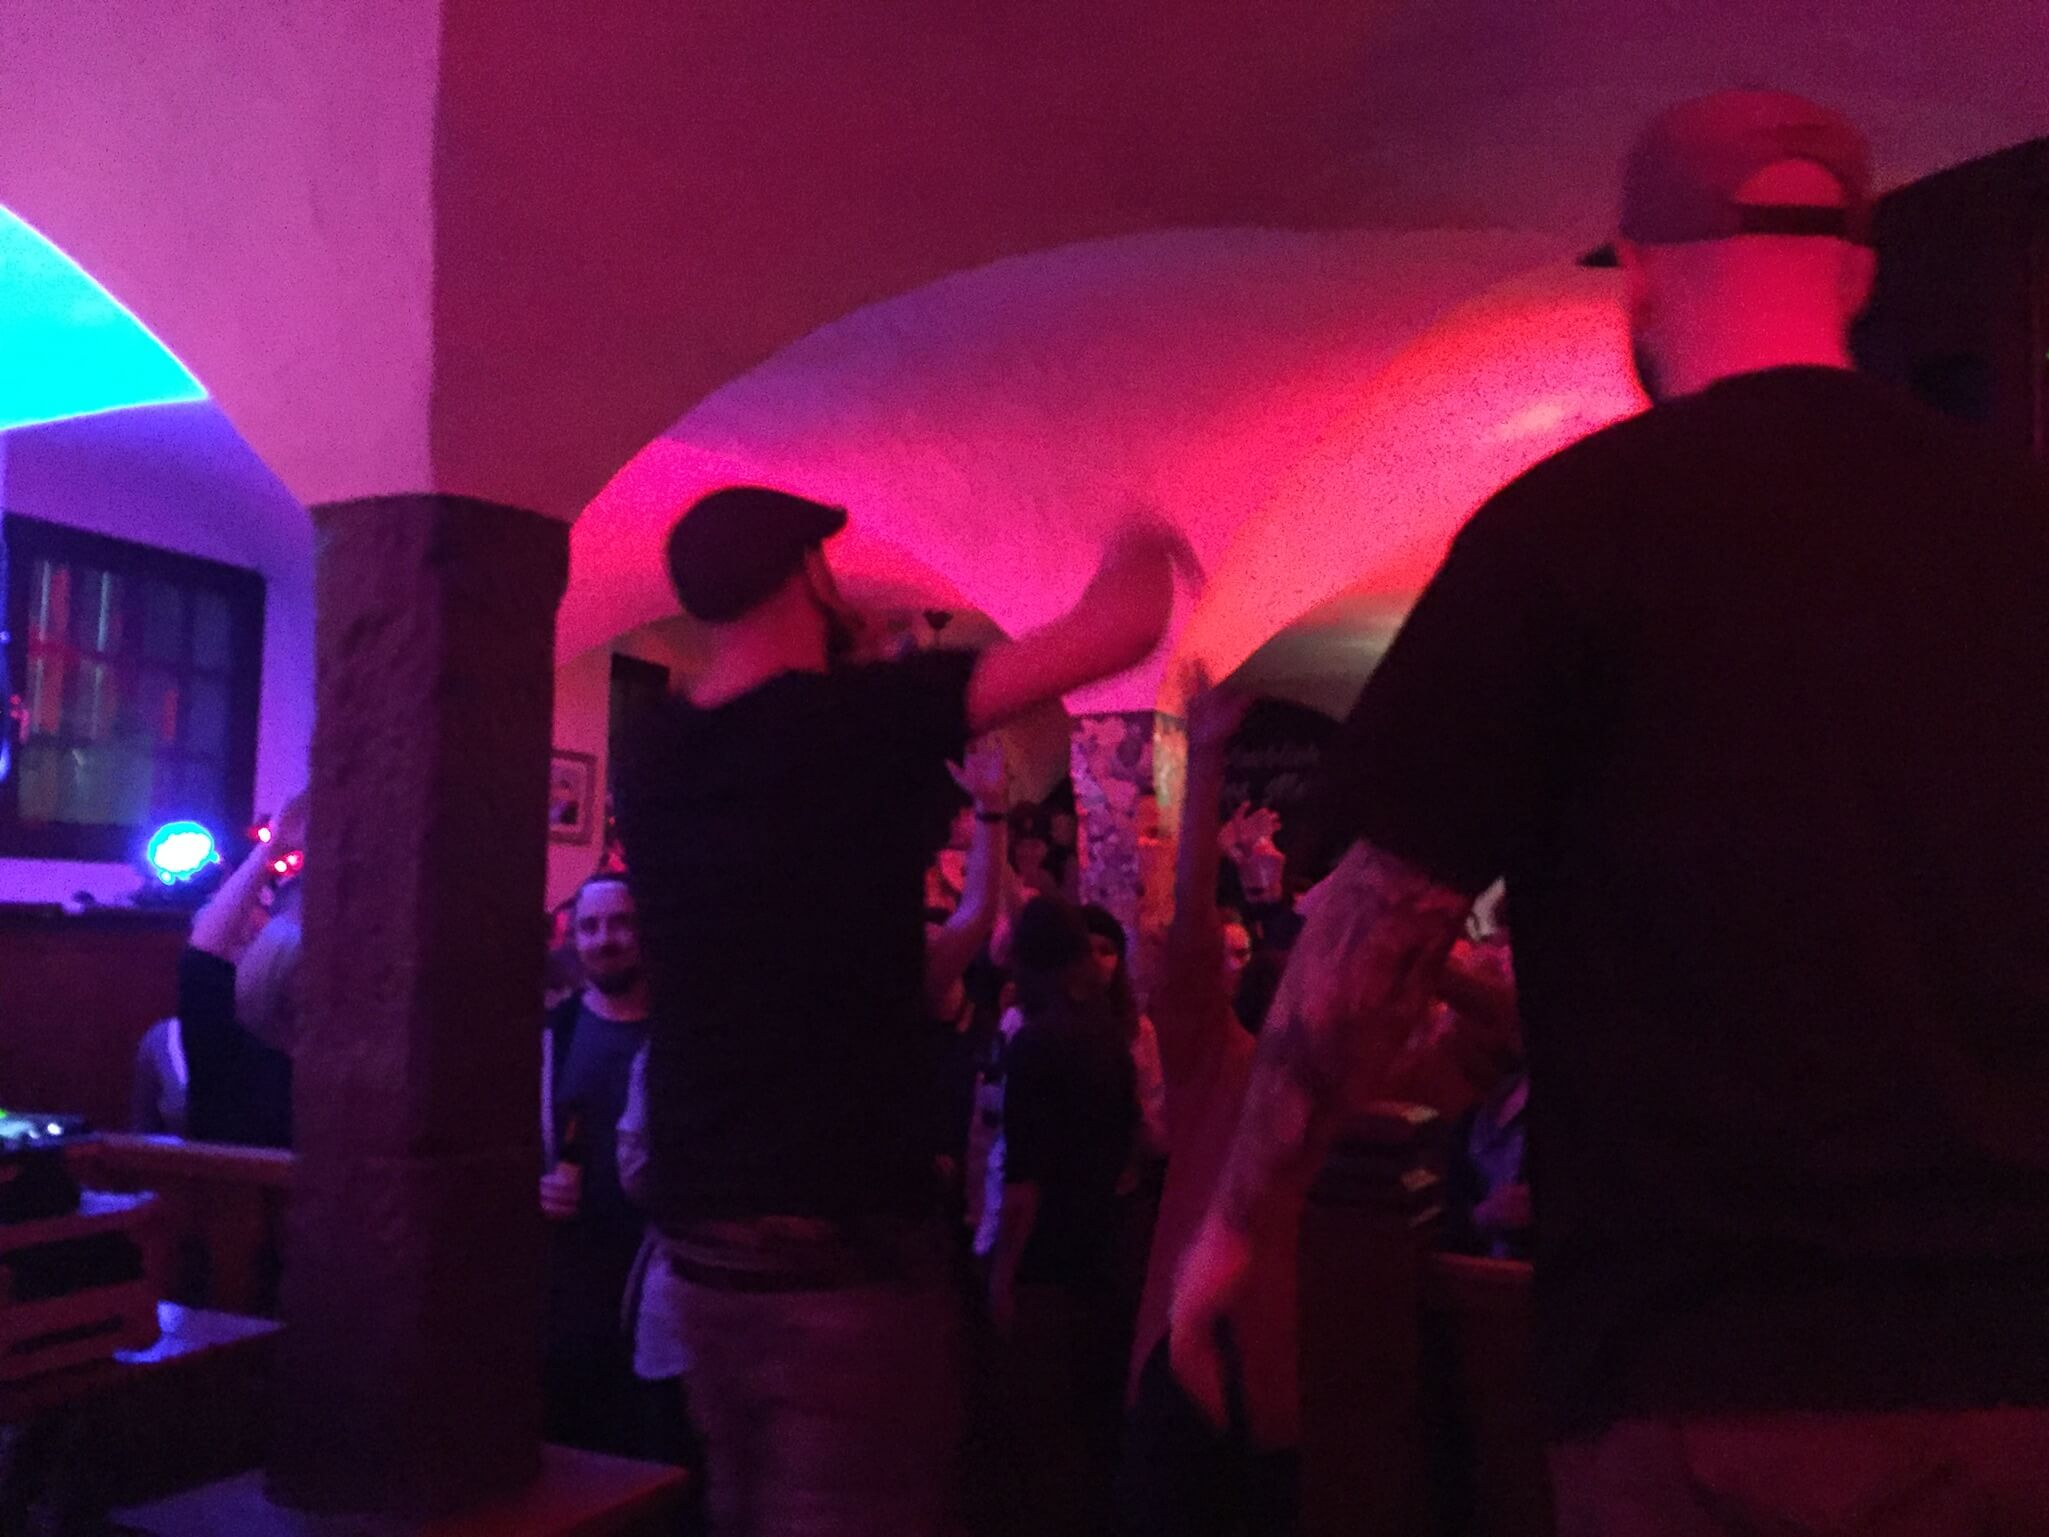 Stageview 1. Company Slow. Frankenburger. Live Hip Hop. Bratwurst Rap. Coburg.